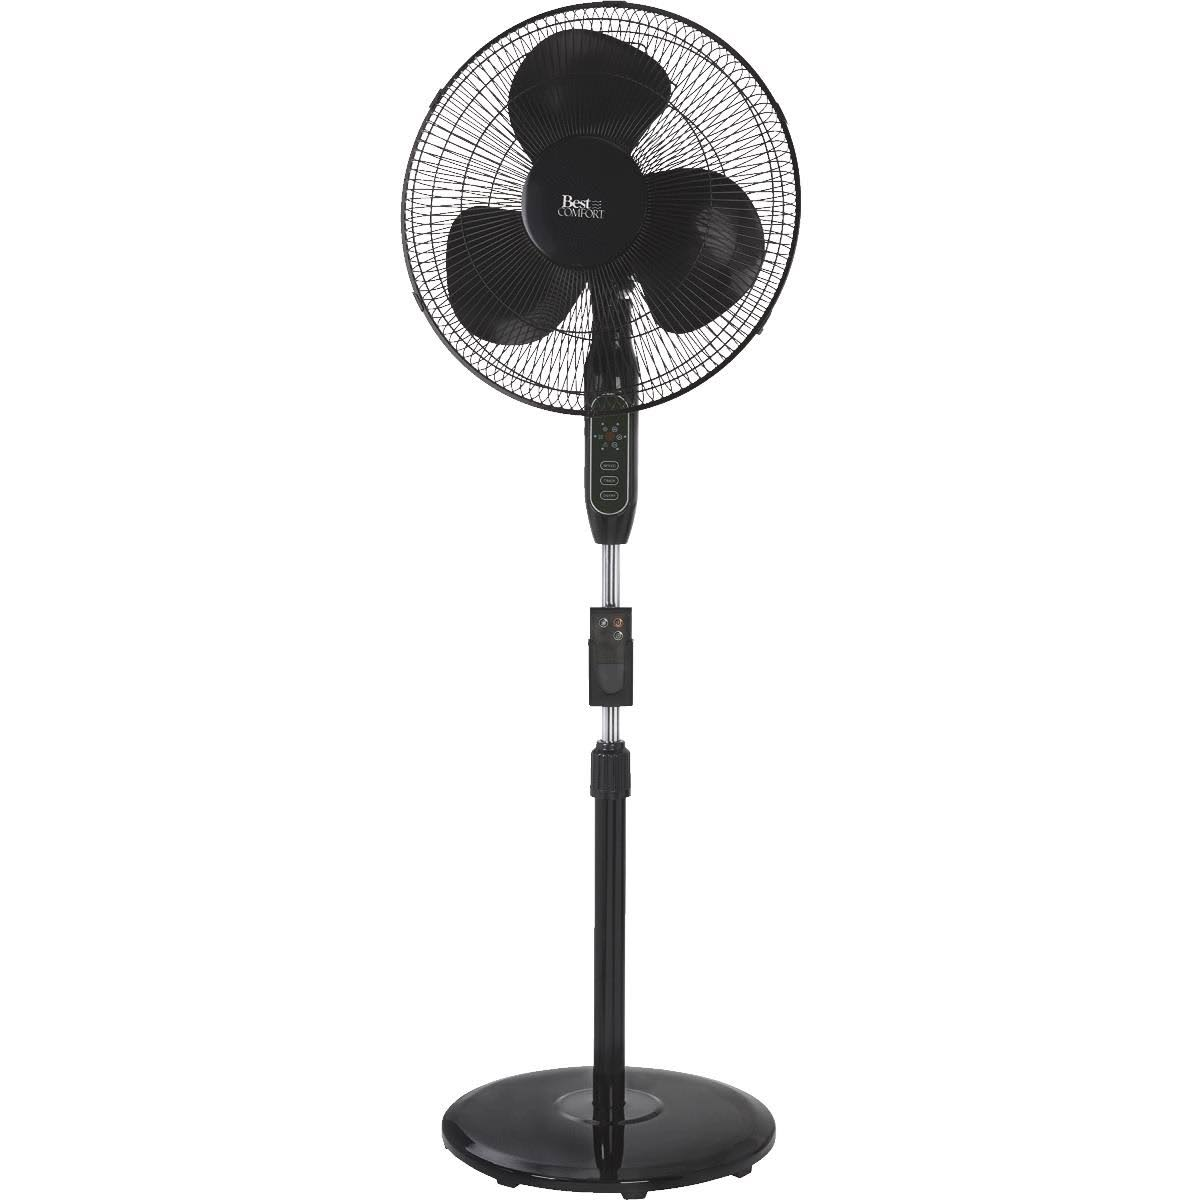 Best Comfort 16 in. Oscillating Pedestal Fan with Remote Control